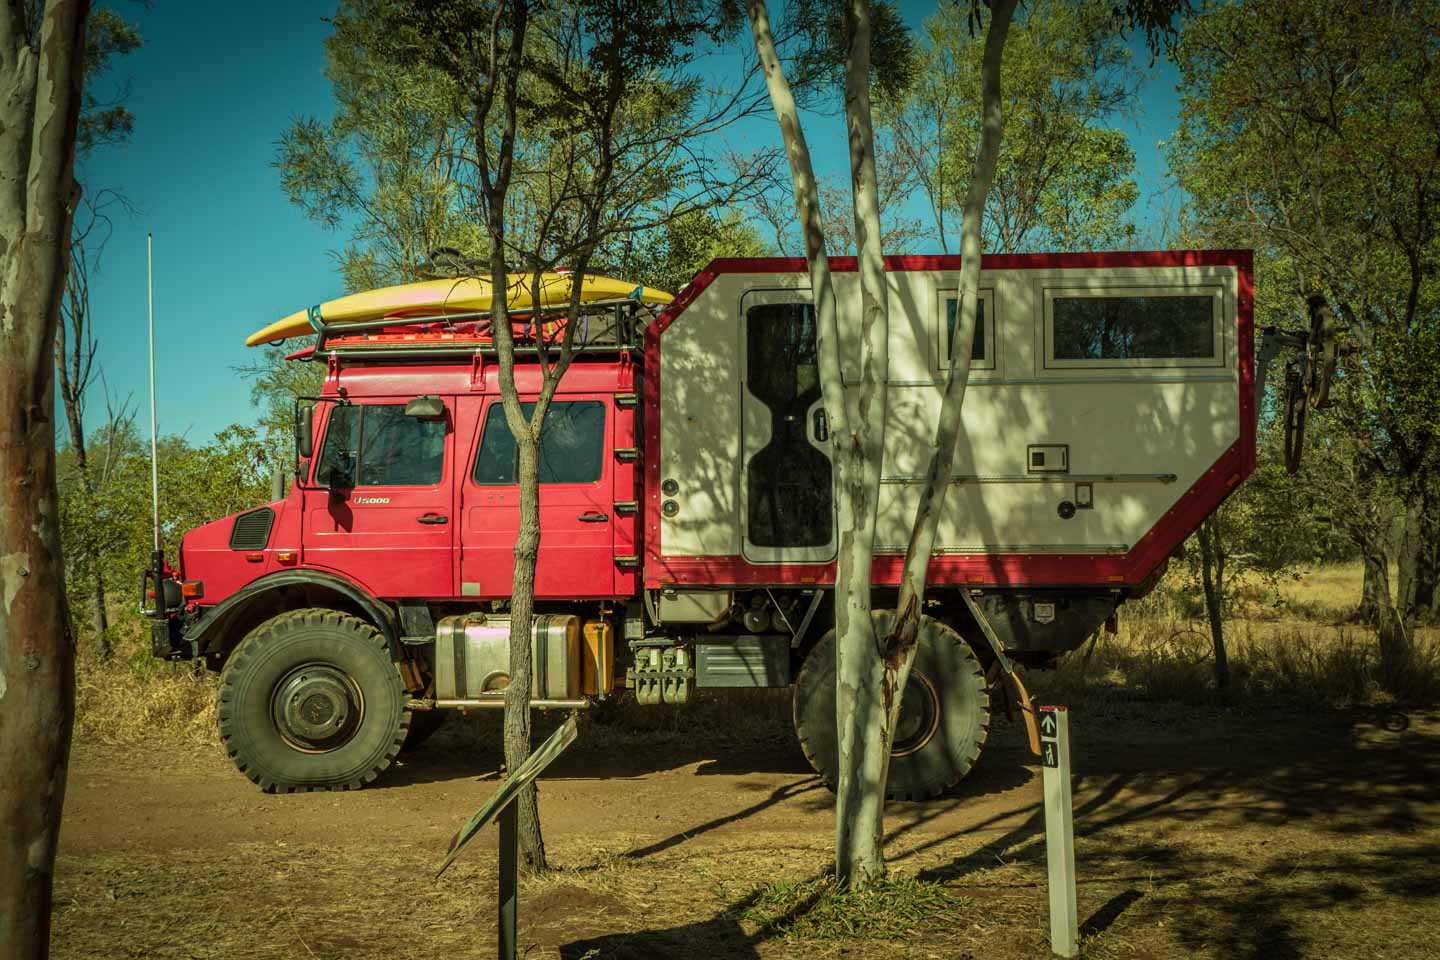 Unimog U5000 custom built camper by Mercedes-Benz at Purnululu National Park Western Australia